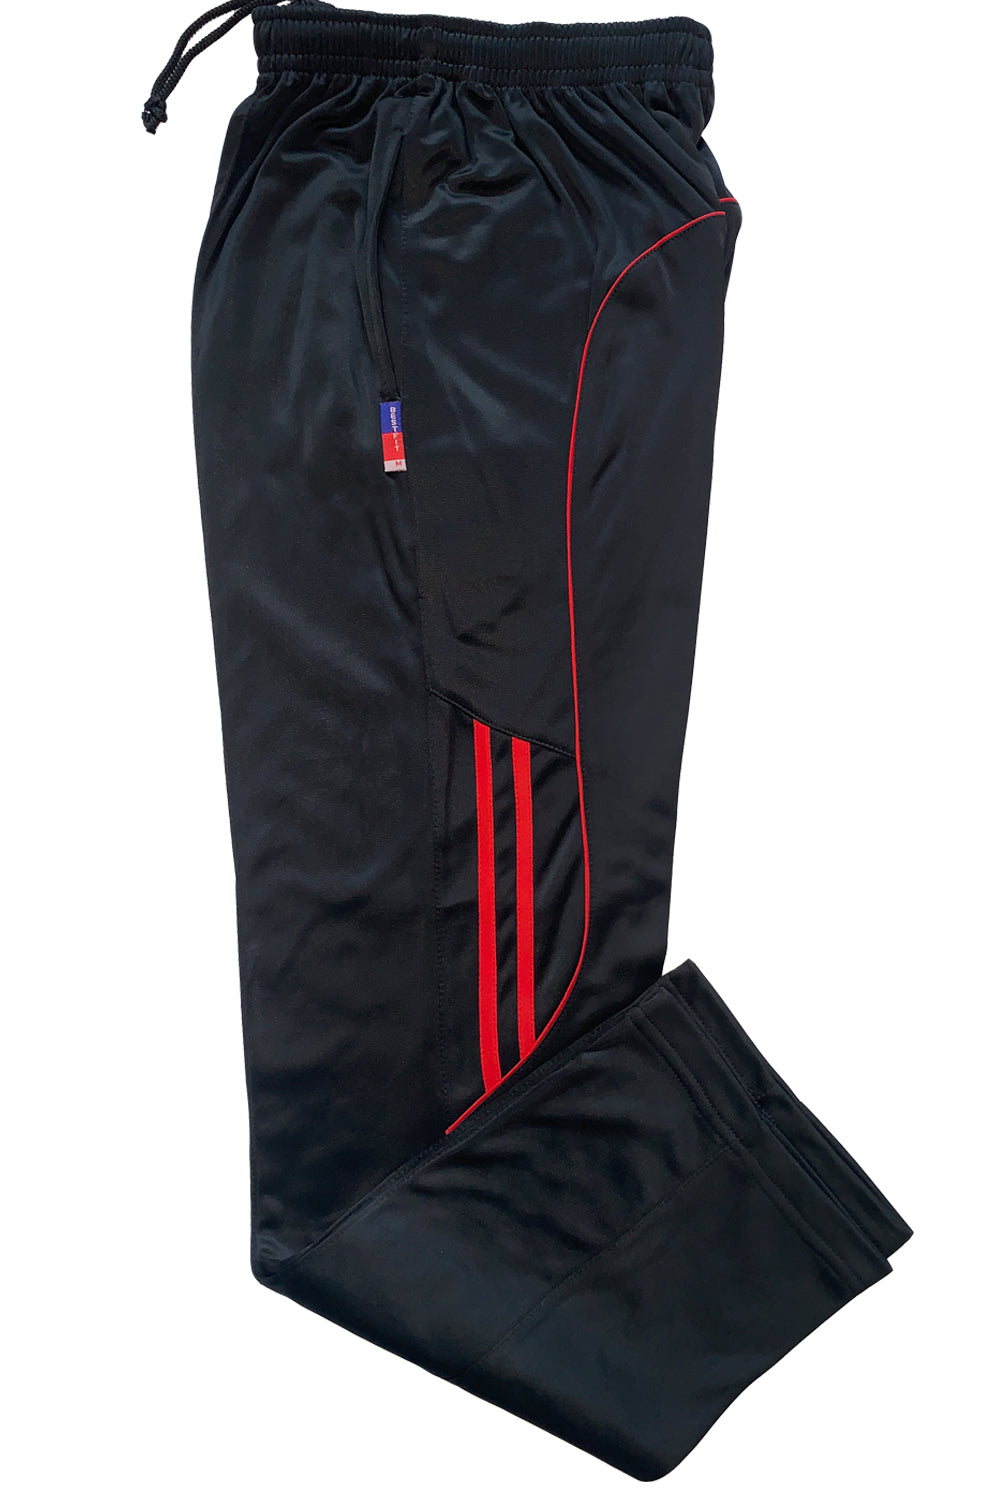 Black Mens Track Pants with Red Stripes Super Poly Lower  for Sports & Nightwear - Bestfit Sportswear